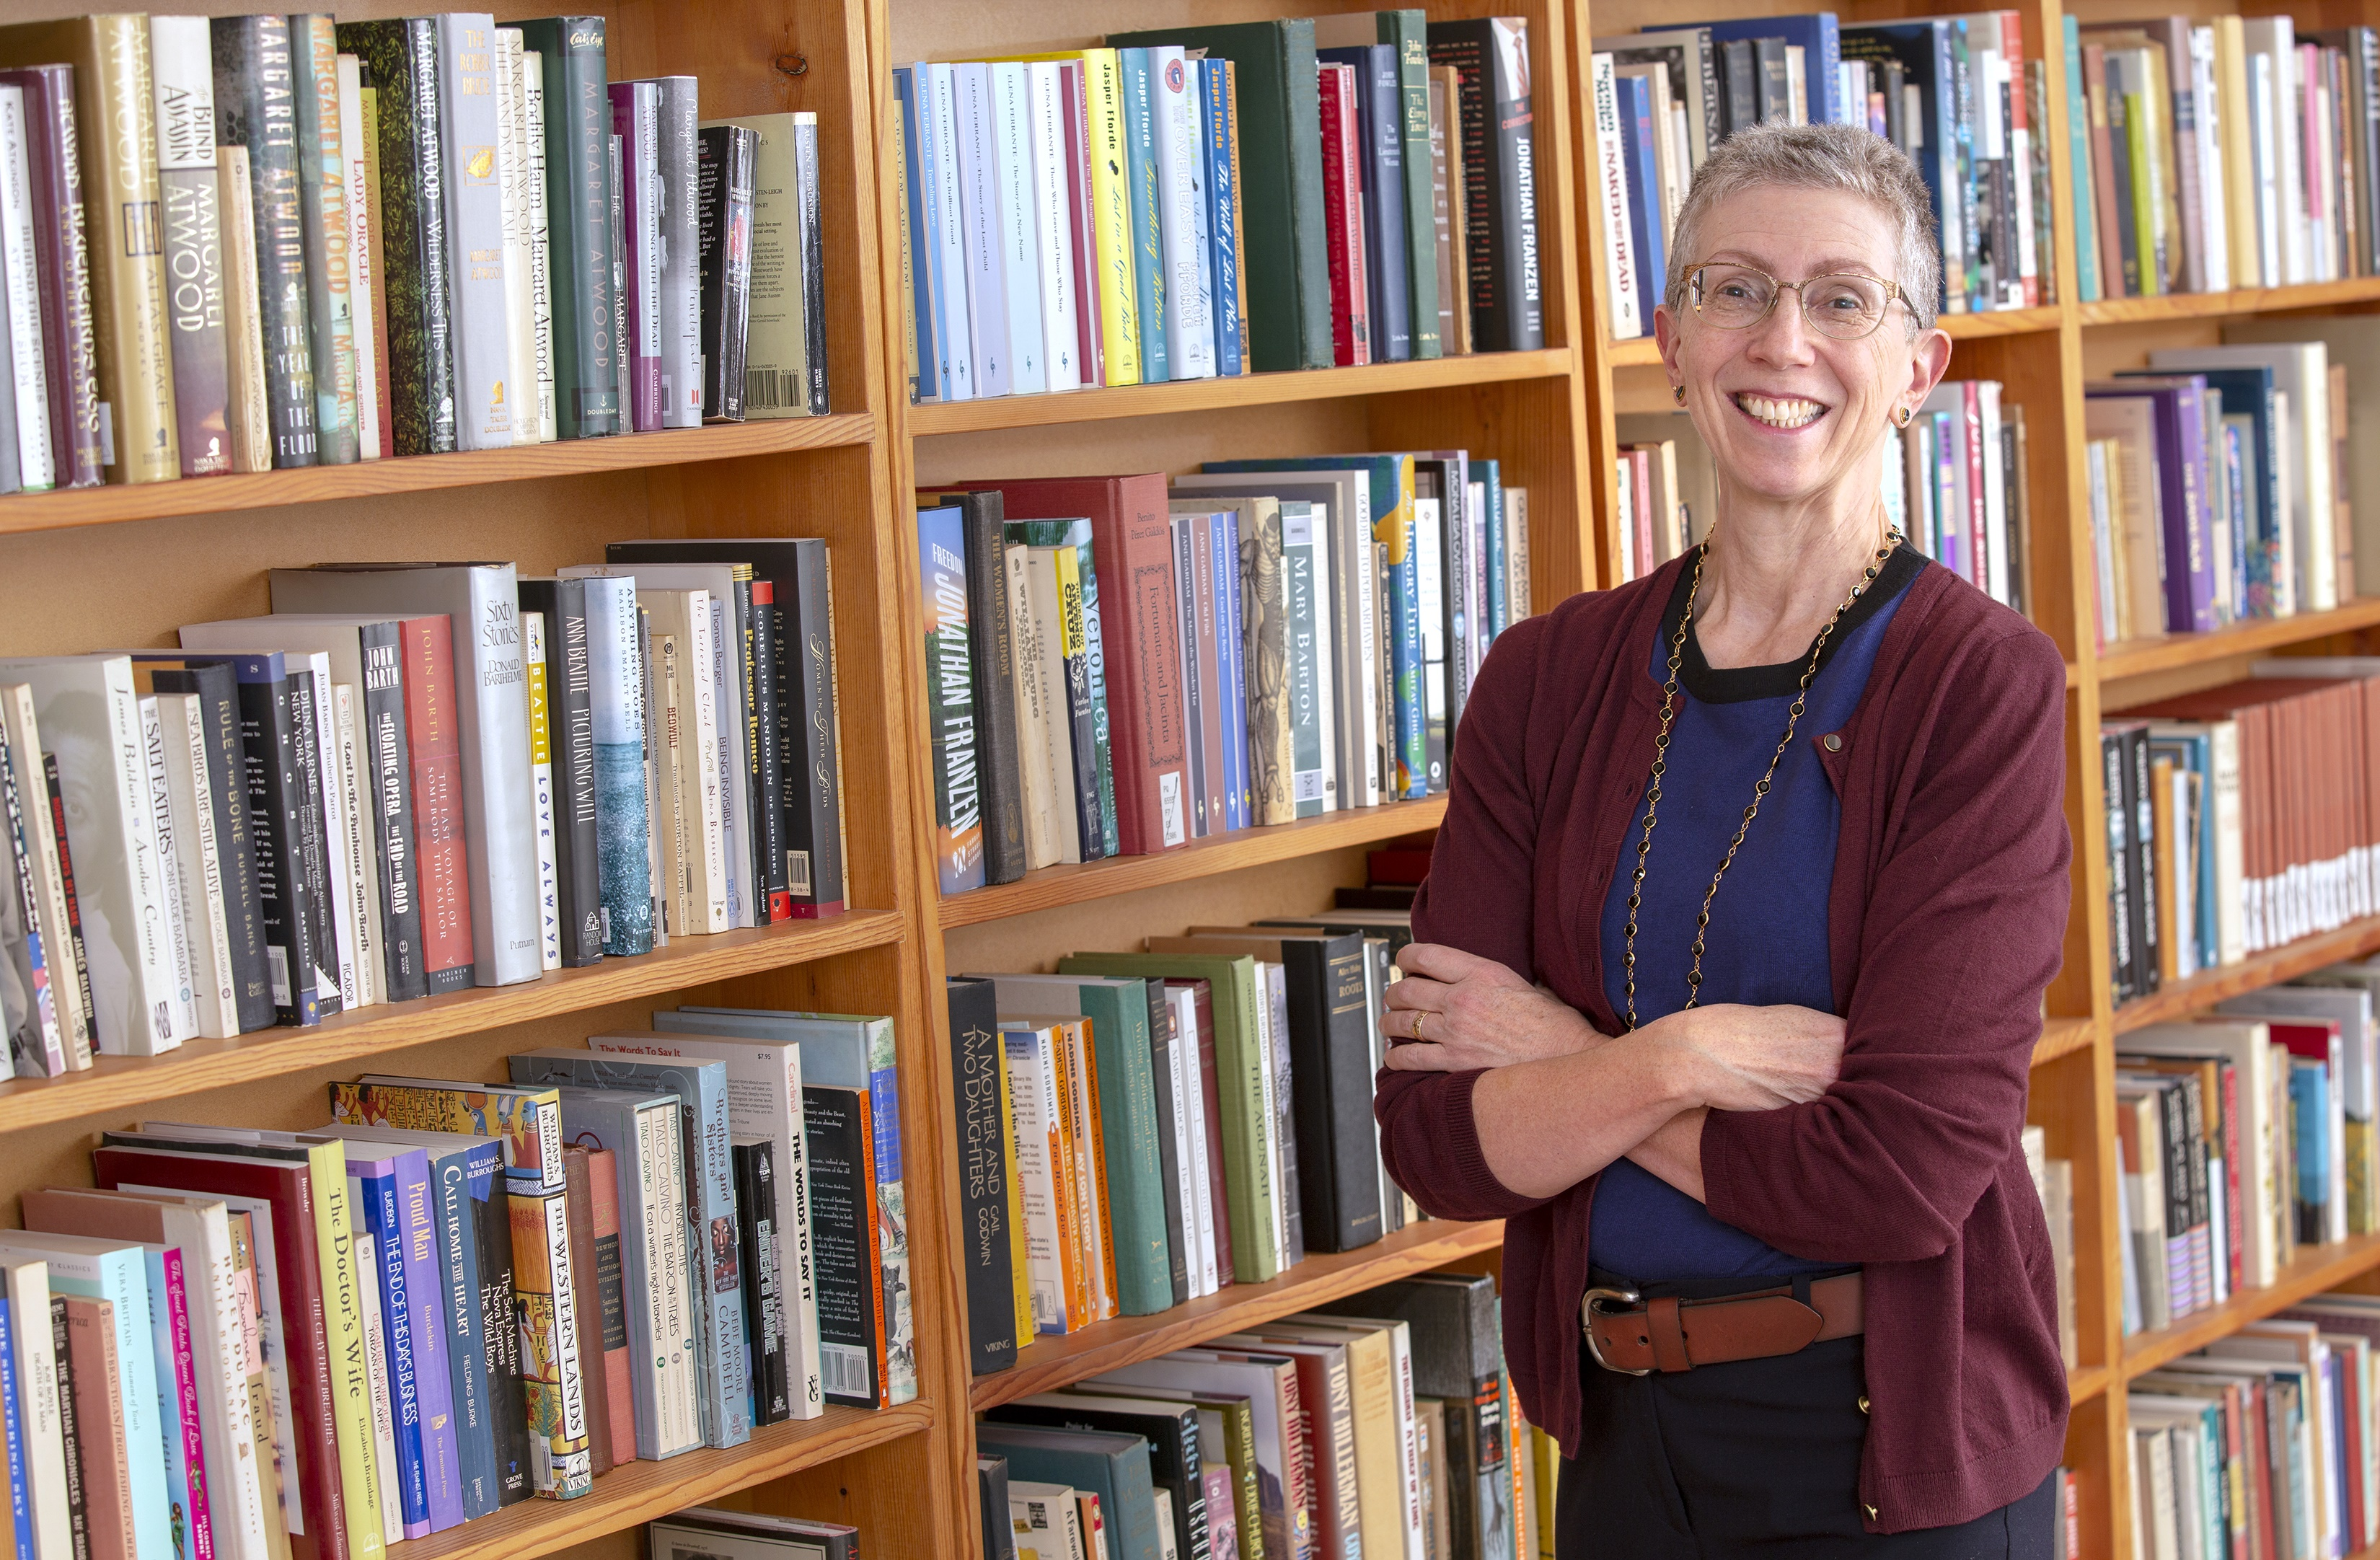 Bernice Hausman, chair of Penn State College of Medicine's Department of Humanities, stands in a library with her arms crossed and smiling. She has short, gray hair and is wearing glasses, a sweater, a T-shirt, casual pants and a brown belt. Five rows of bookshelves filled with books are to her left.